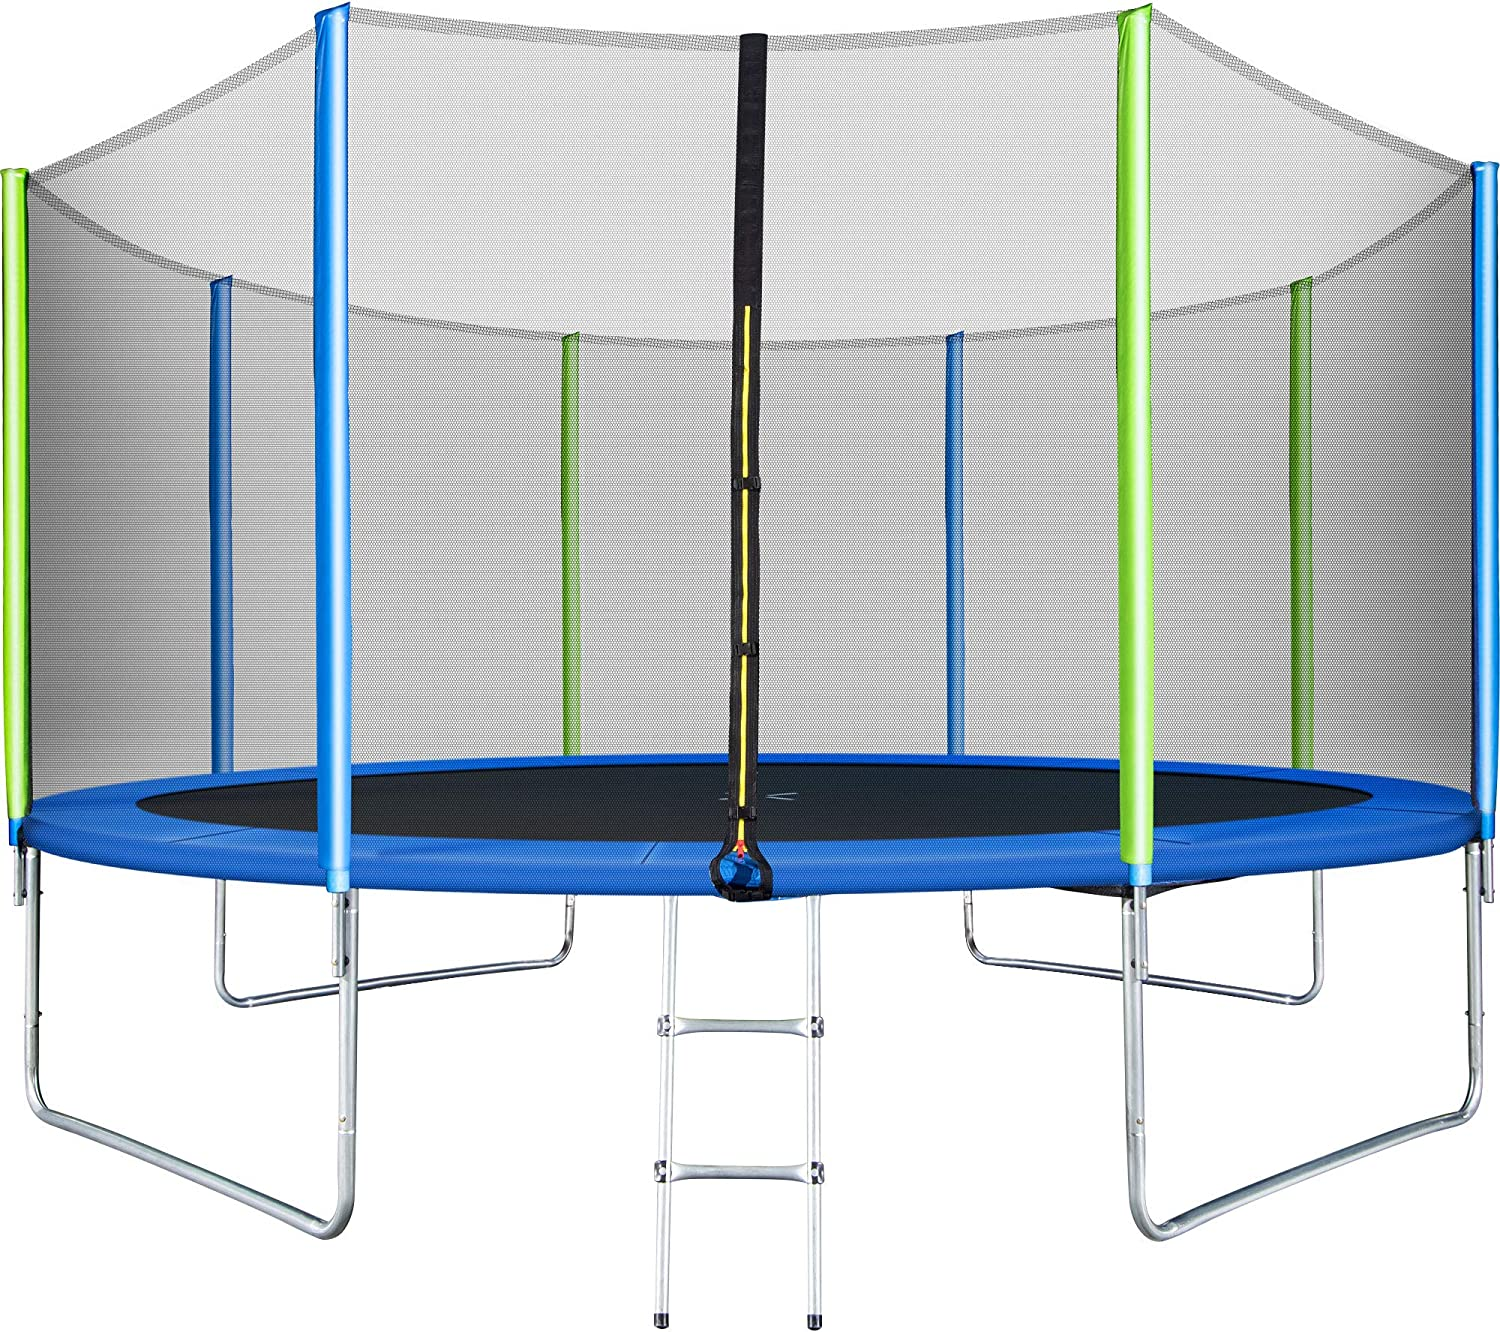 WISHWILL 12FT Now free shipping Nashville-Davidson Mall 14FT 16FT Approved Outdoor 𝕋rampoline ASTM